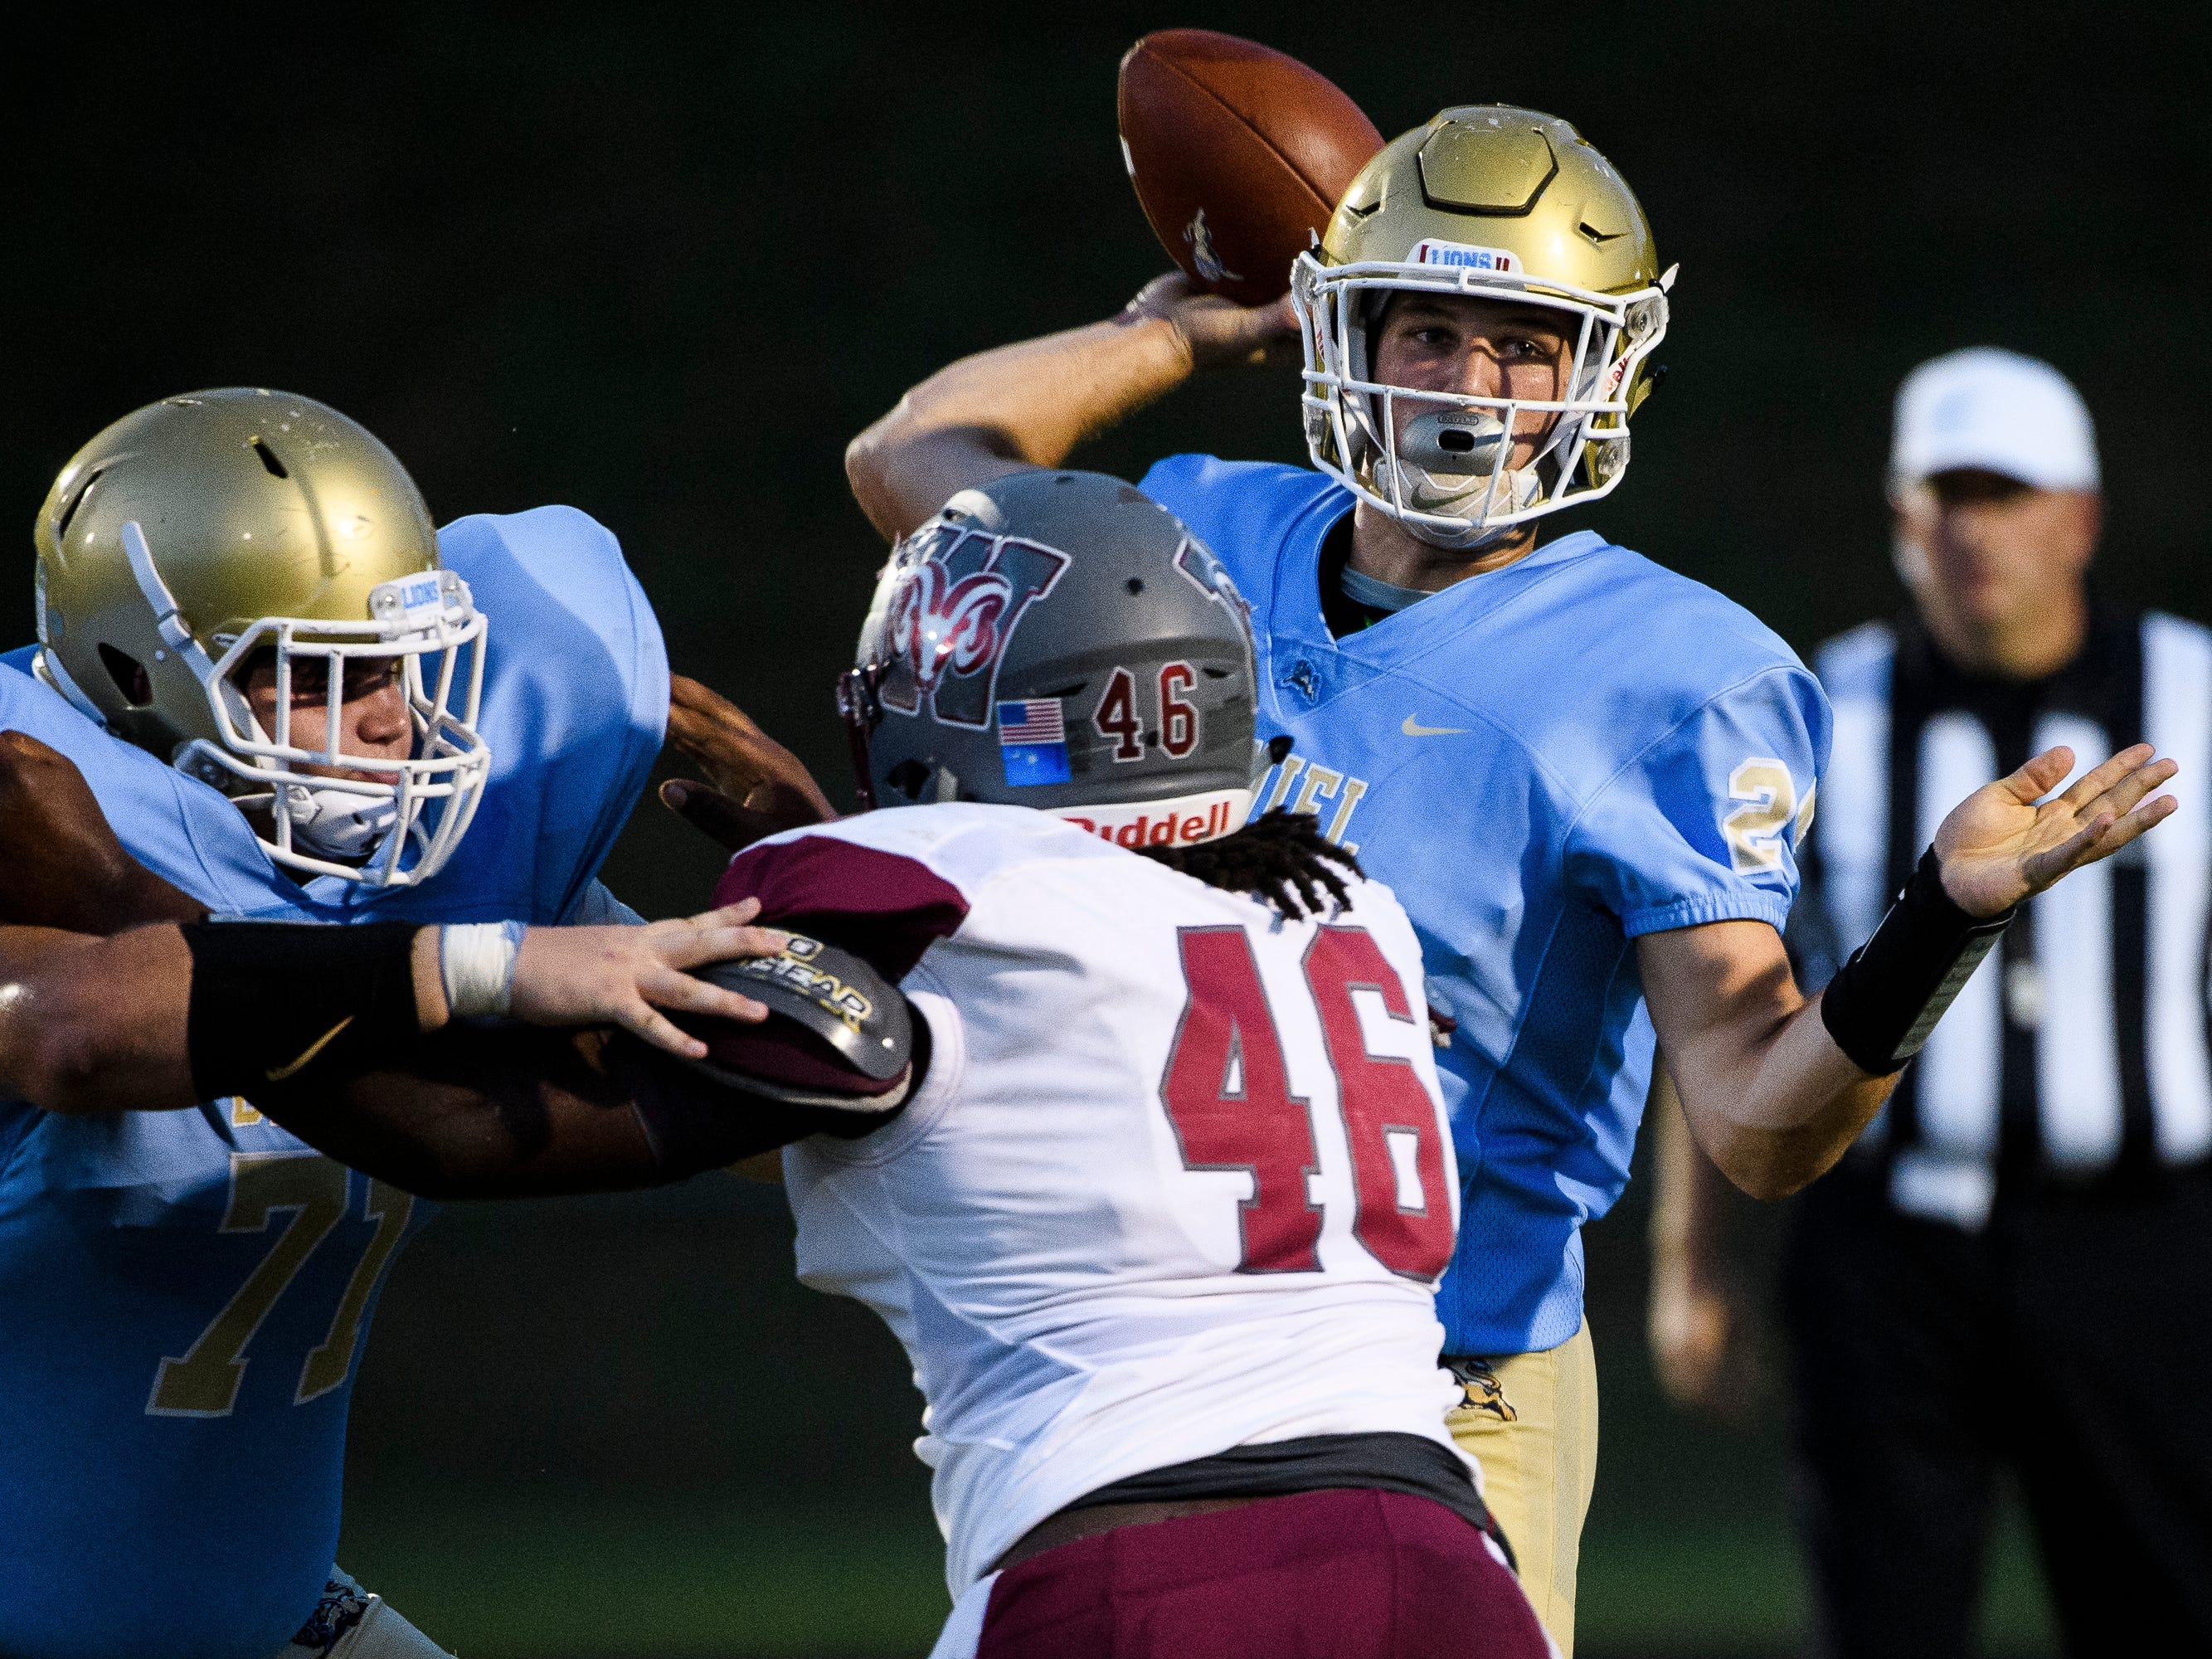 Daniel quarterback Tyler Venables (24) throws the ball during their game against Westside on Friday, Sept. 7, 2018.